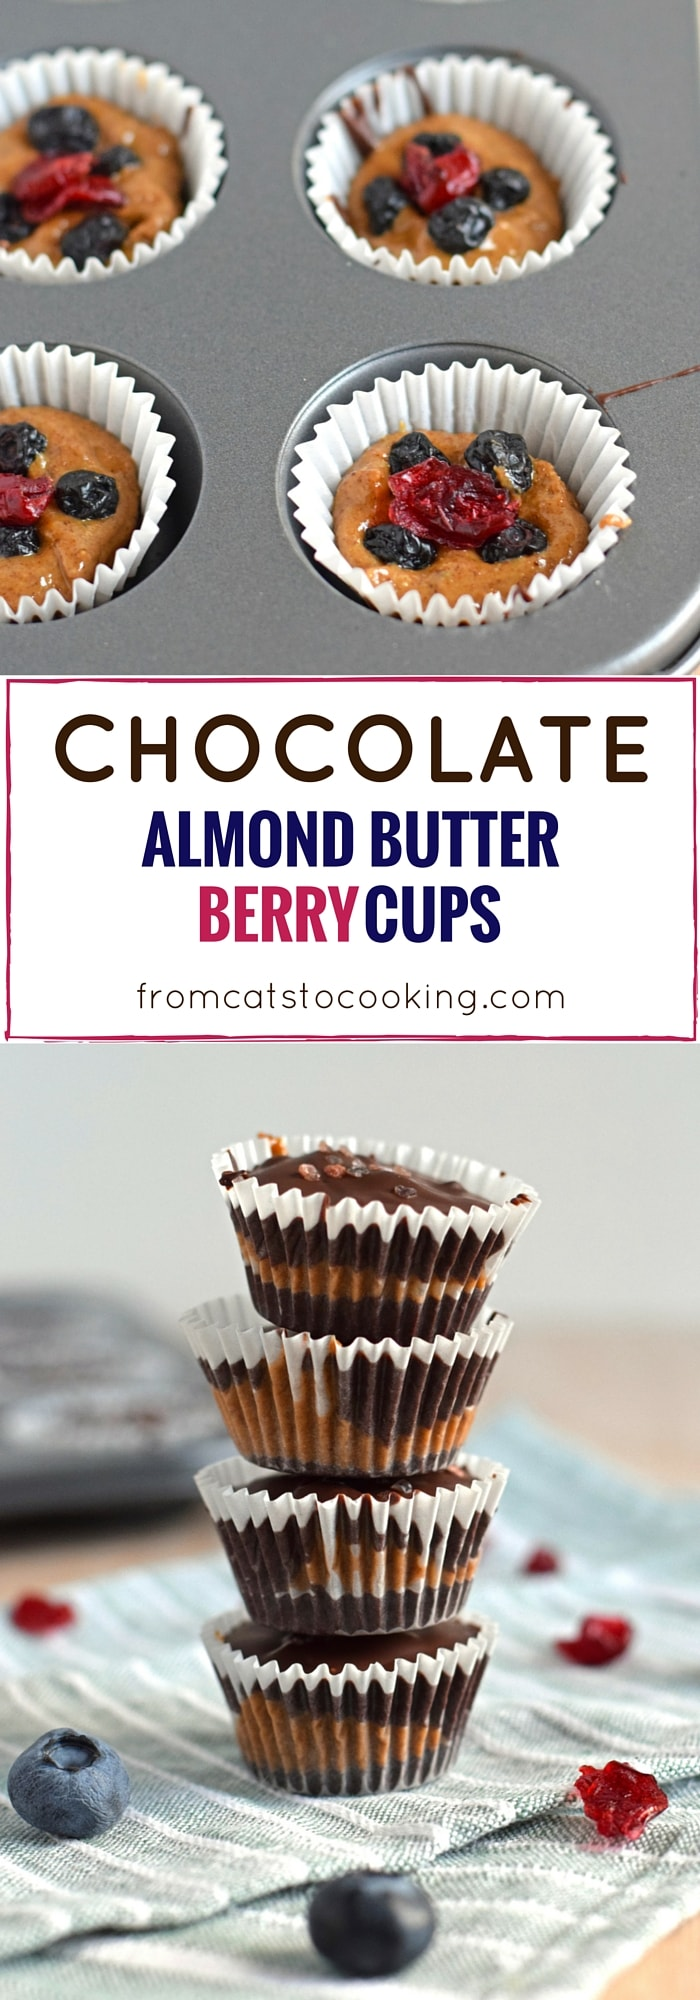 These no bake Chocolate Almond Butter Berry Cups topped with sea salt ...